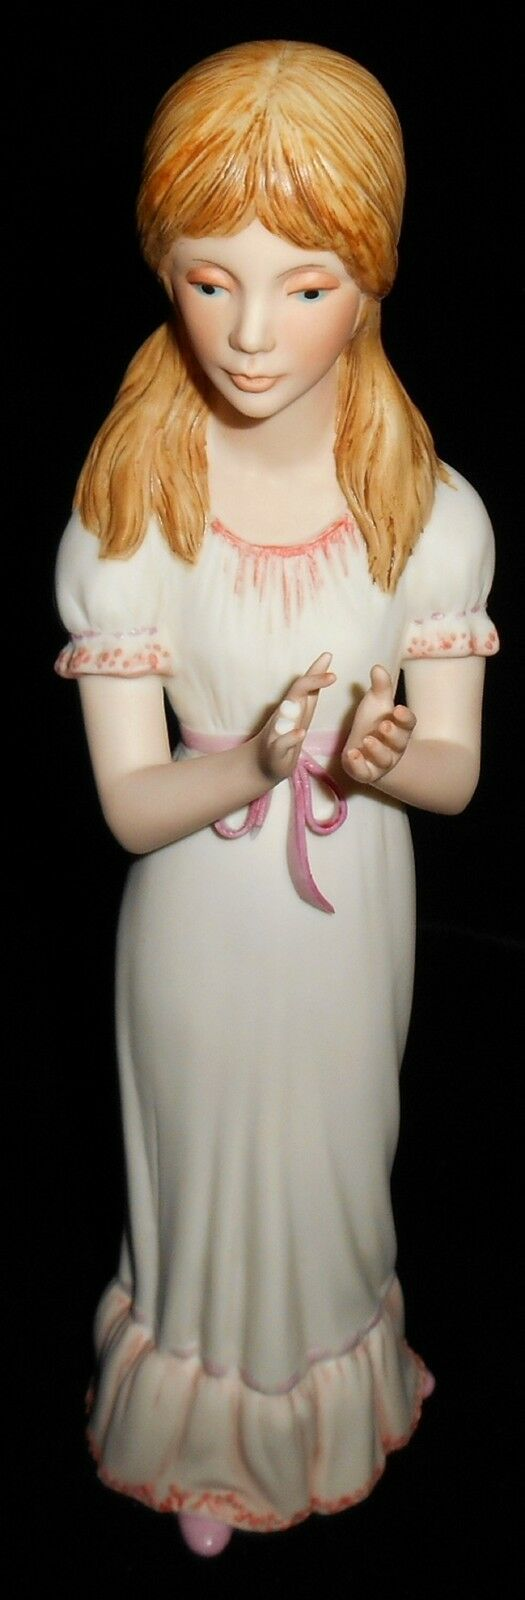 Porcelain Bisque CYBIS FIGURINE - EDITH Pink Accents CHILDRENS STORY HOUR As Is